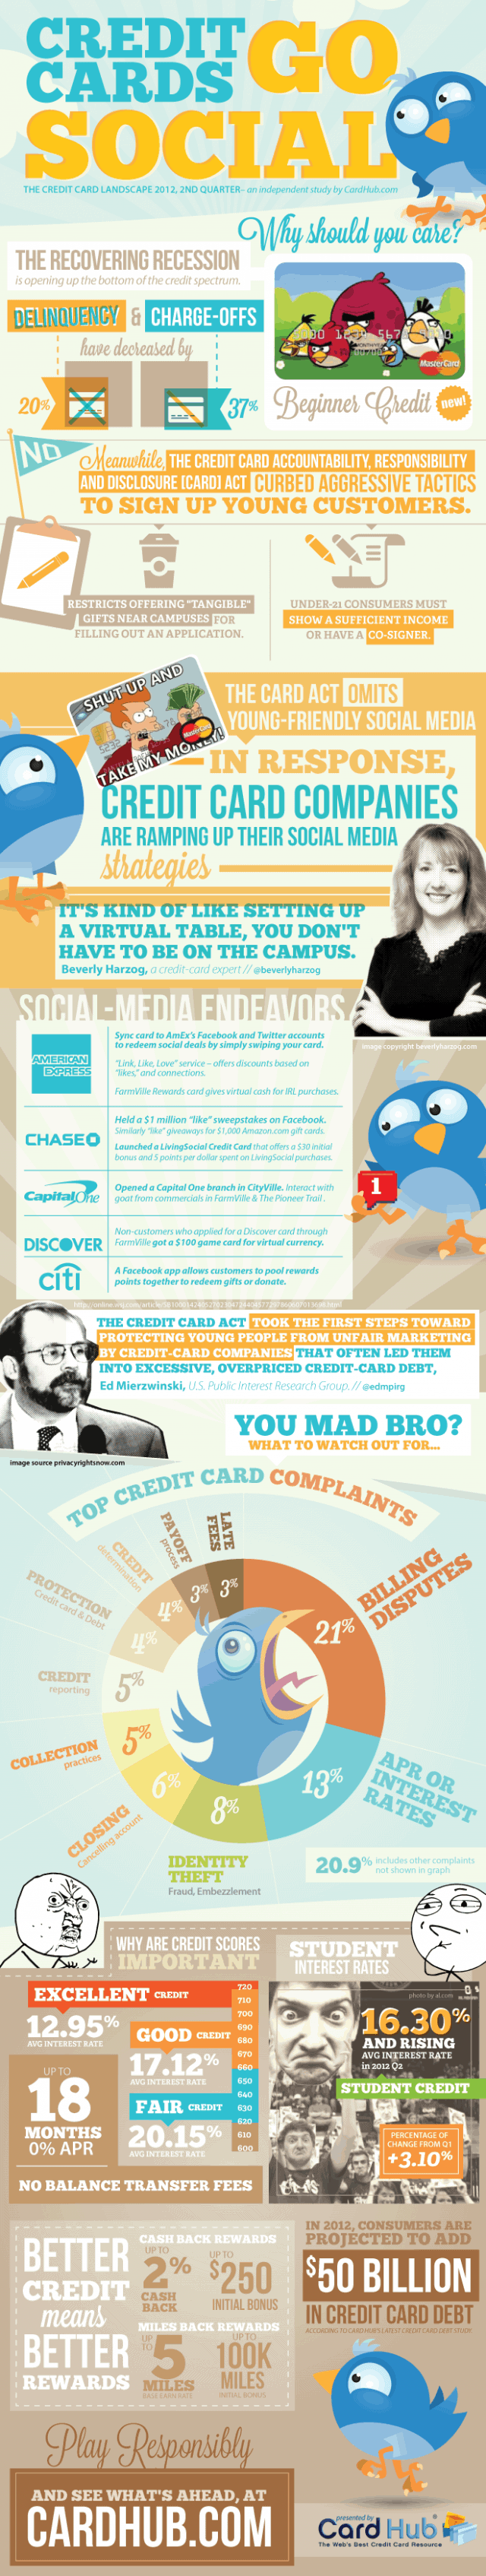 Credit-Cards-Social-Infographic_V152_-640x3389